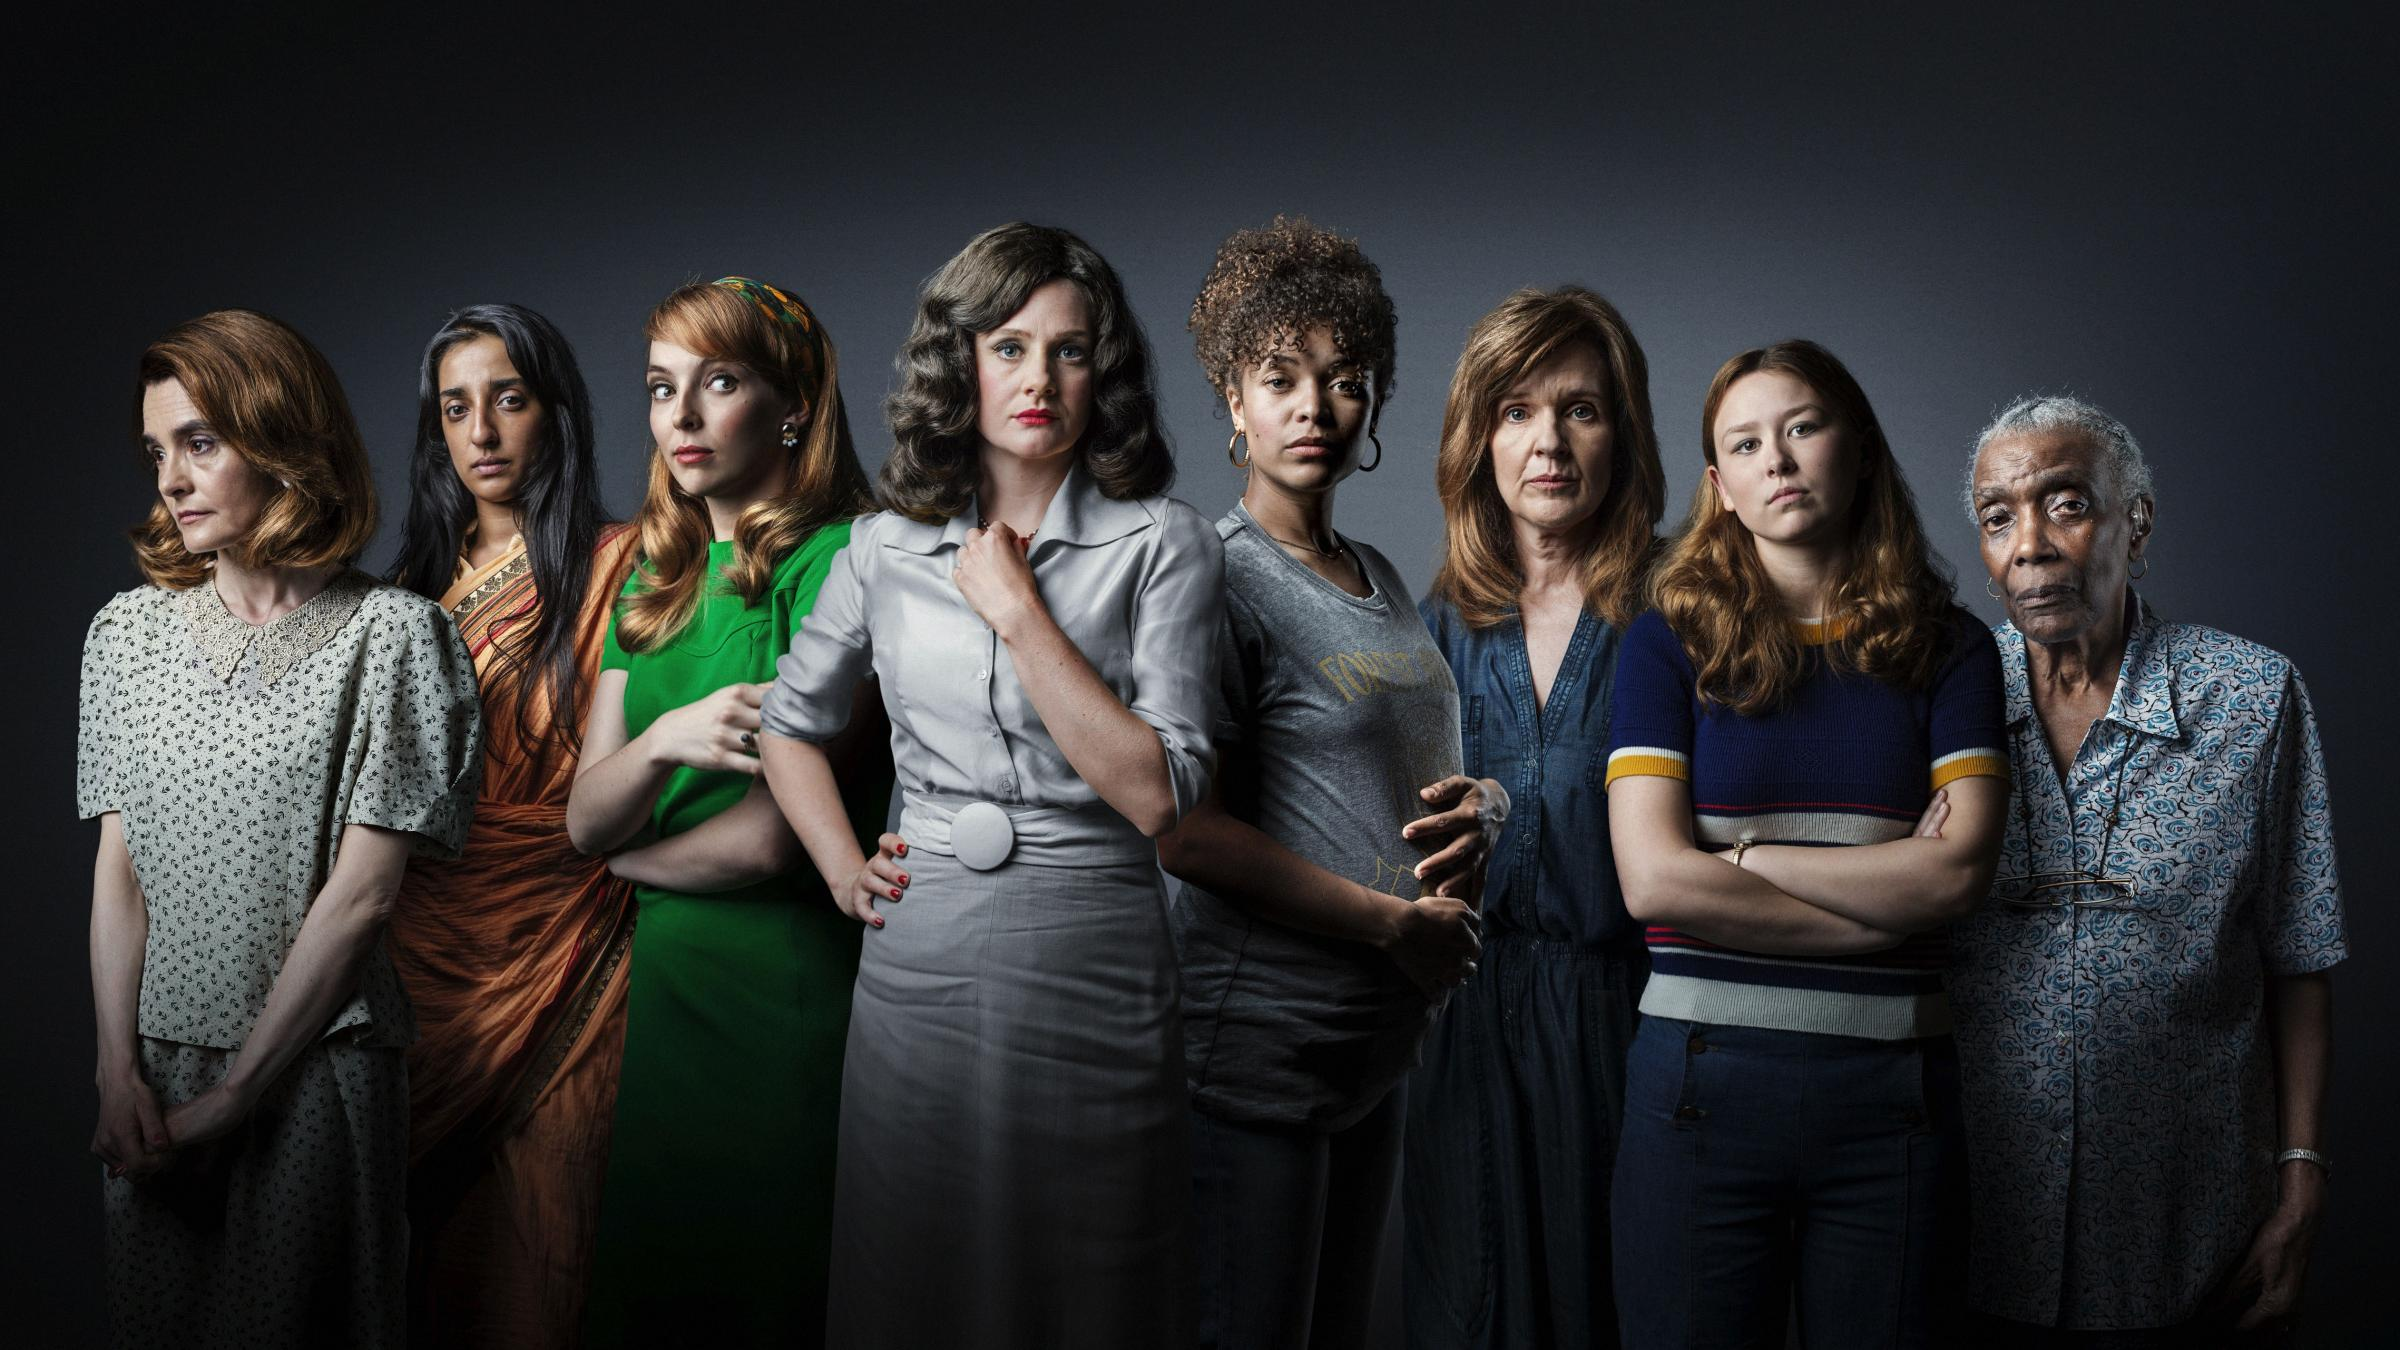 Name for women-based series amused bbc, says Vicky Featherstone